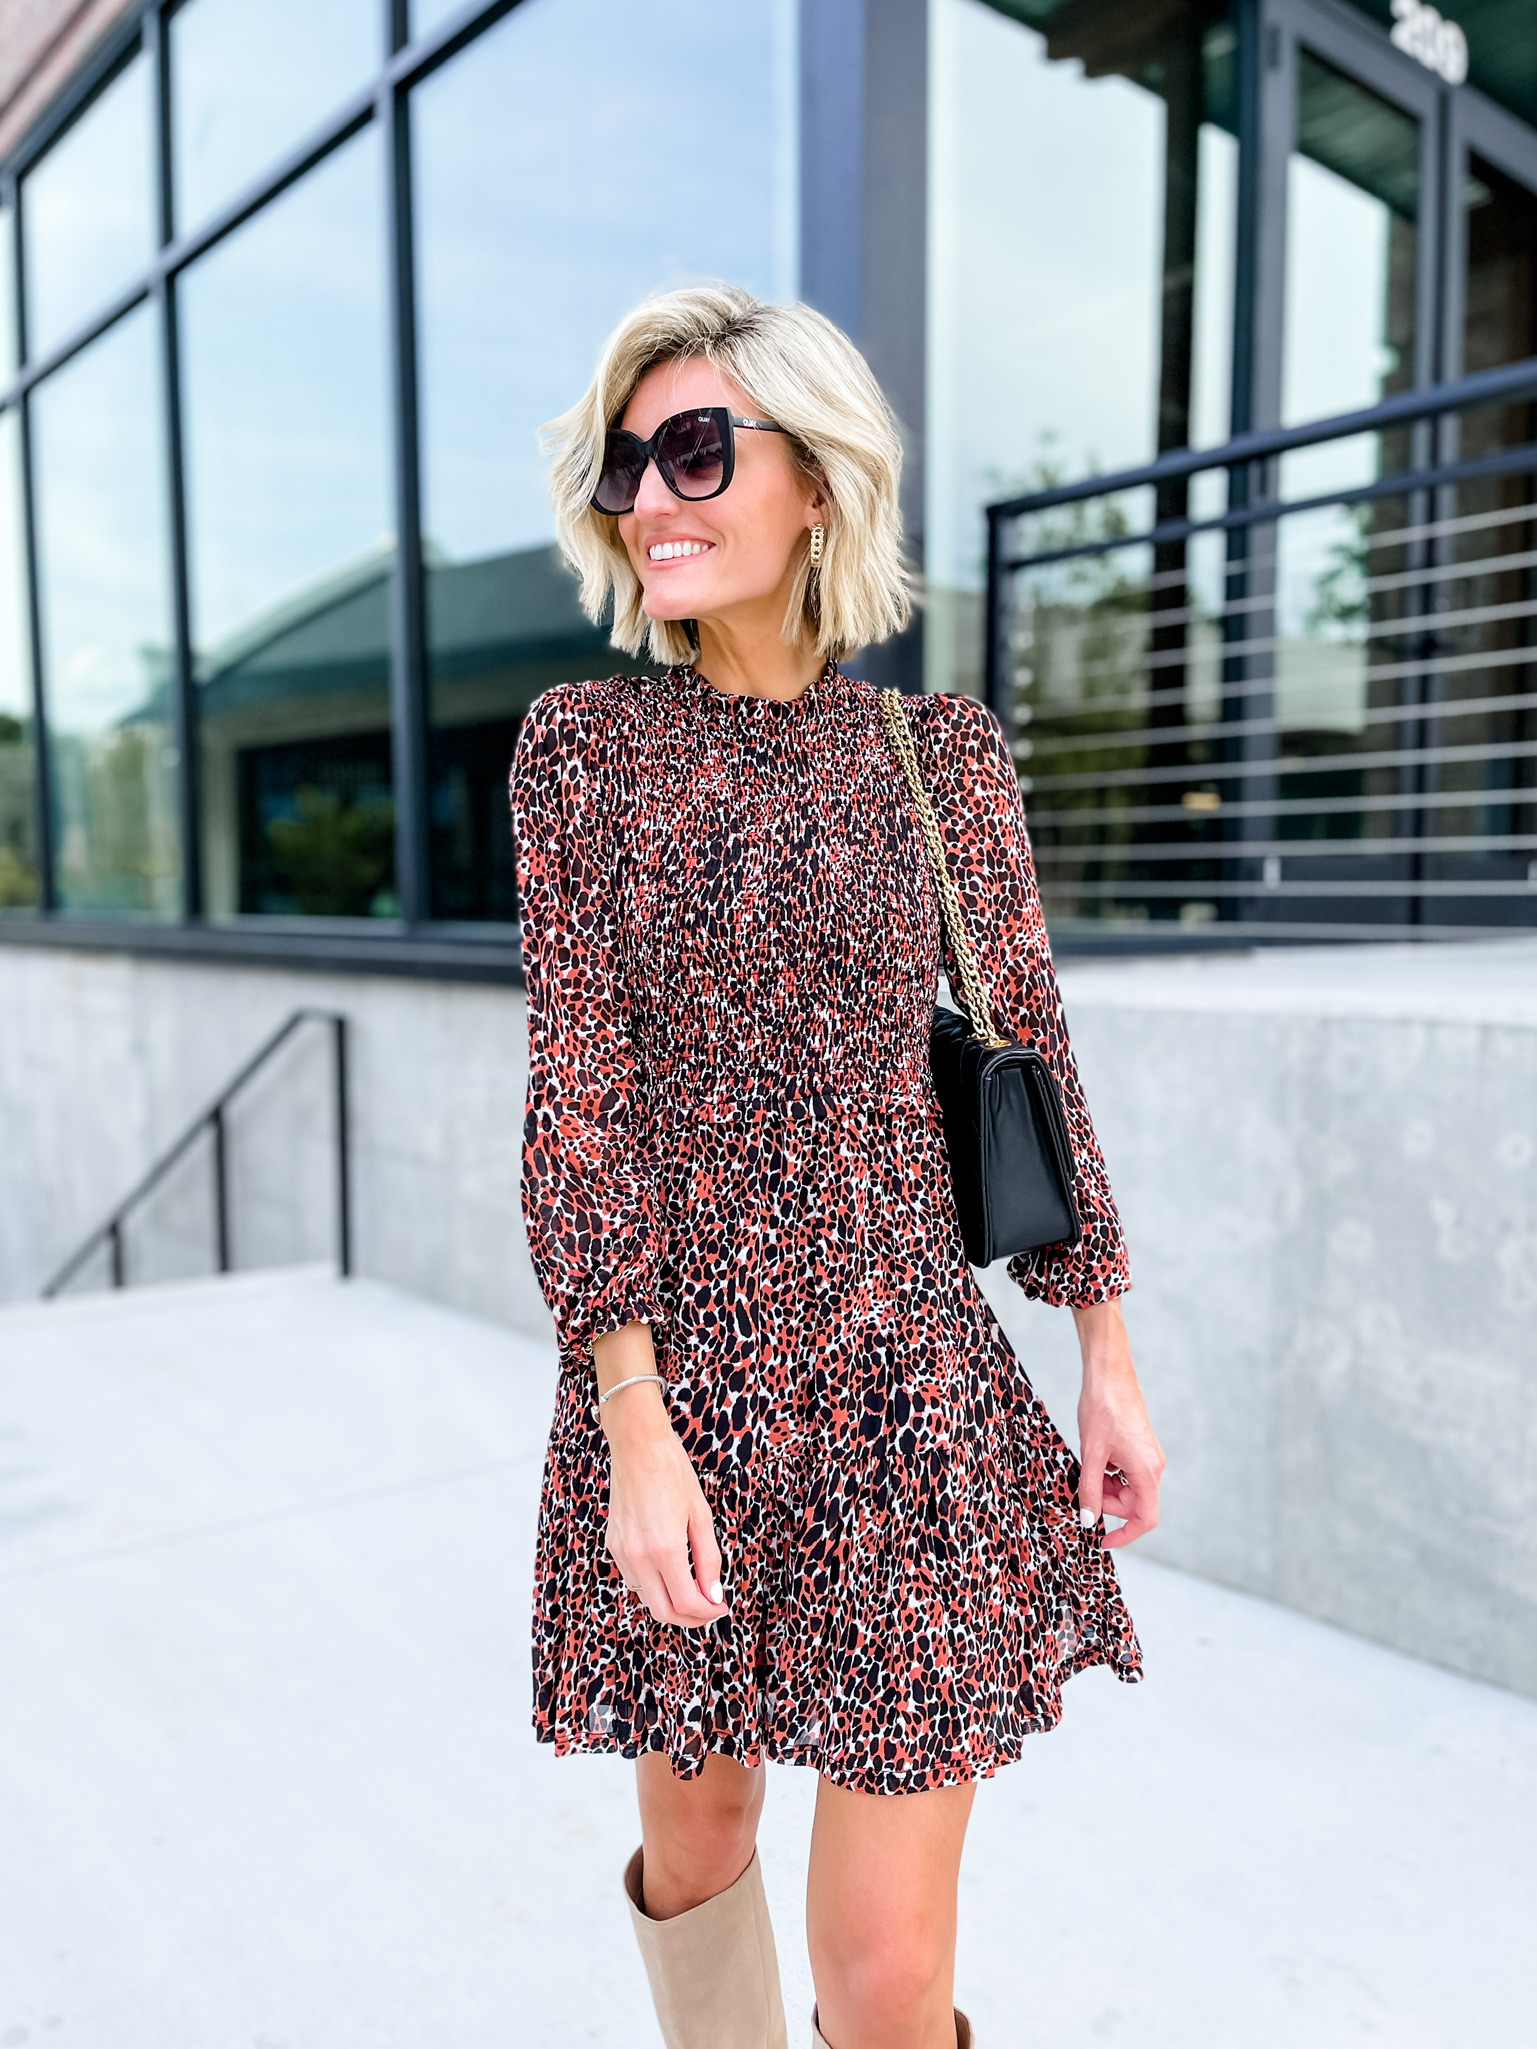 5 Affordable Summer to Fall Looks